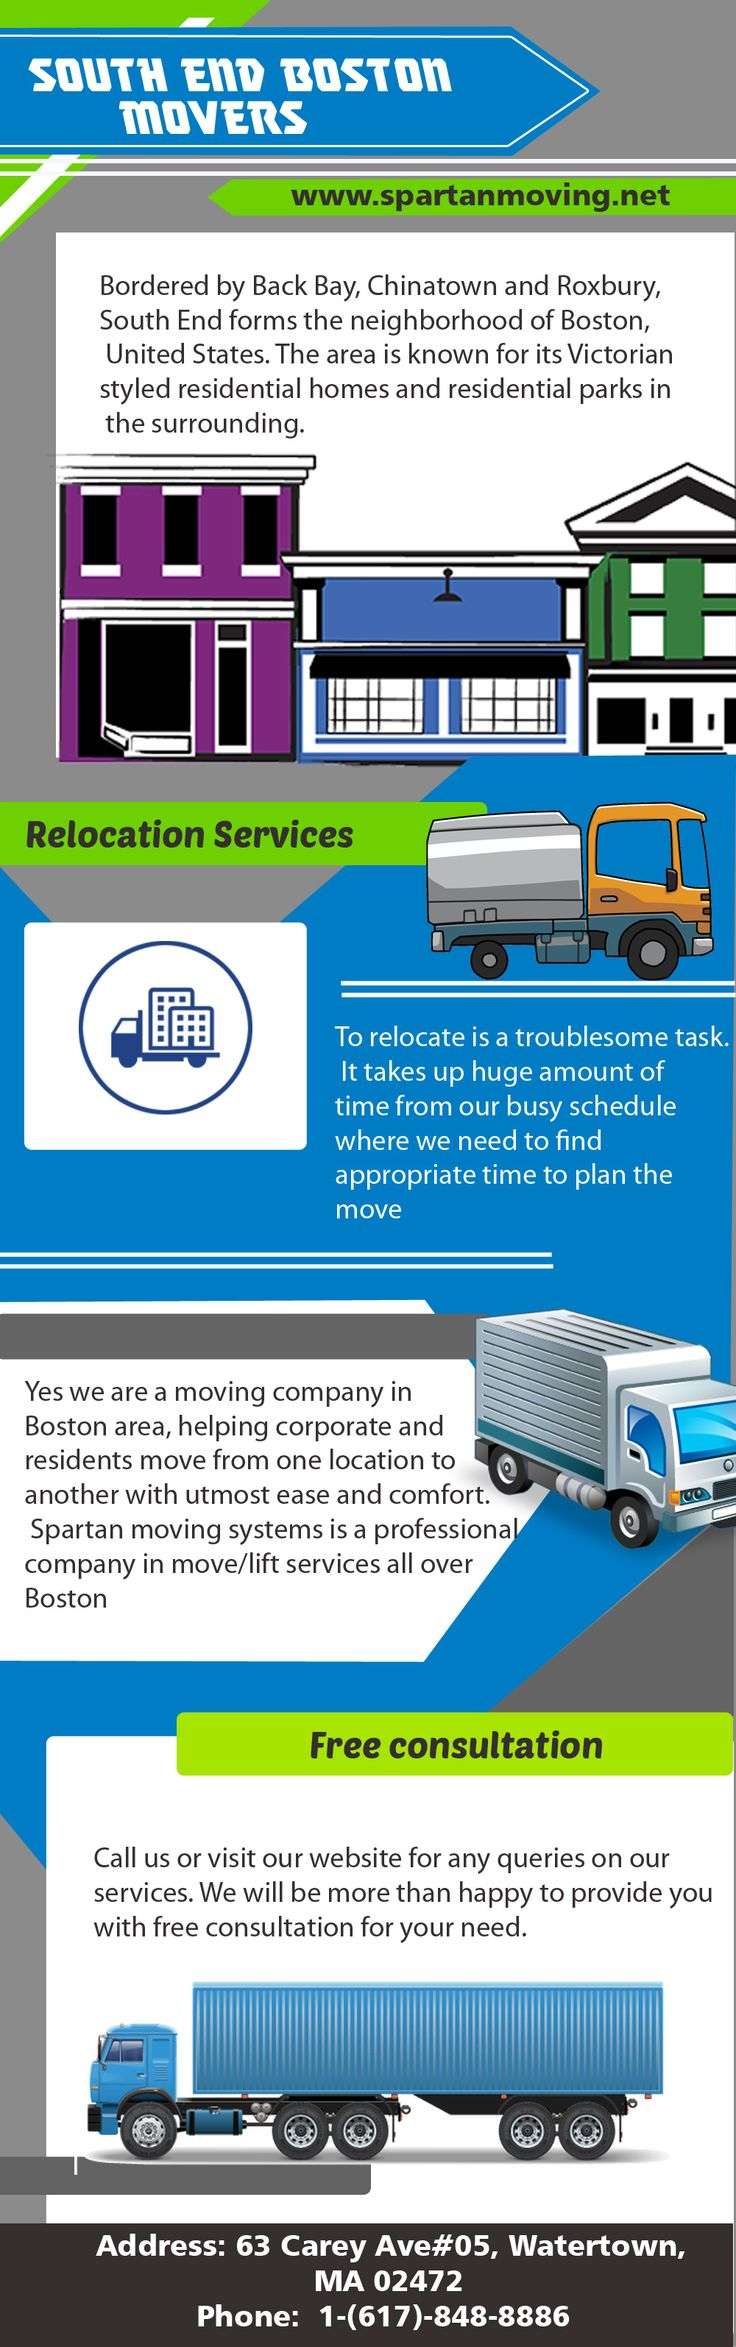 South End Boston Movers Service – well trained employees will help you relocate with ease and comfort. Long distance and local move services at Boston, Massachusetts.